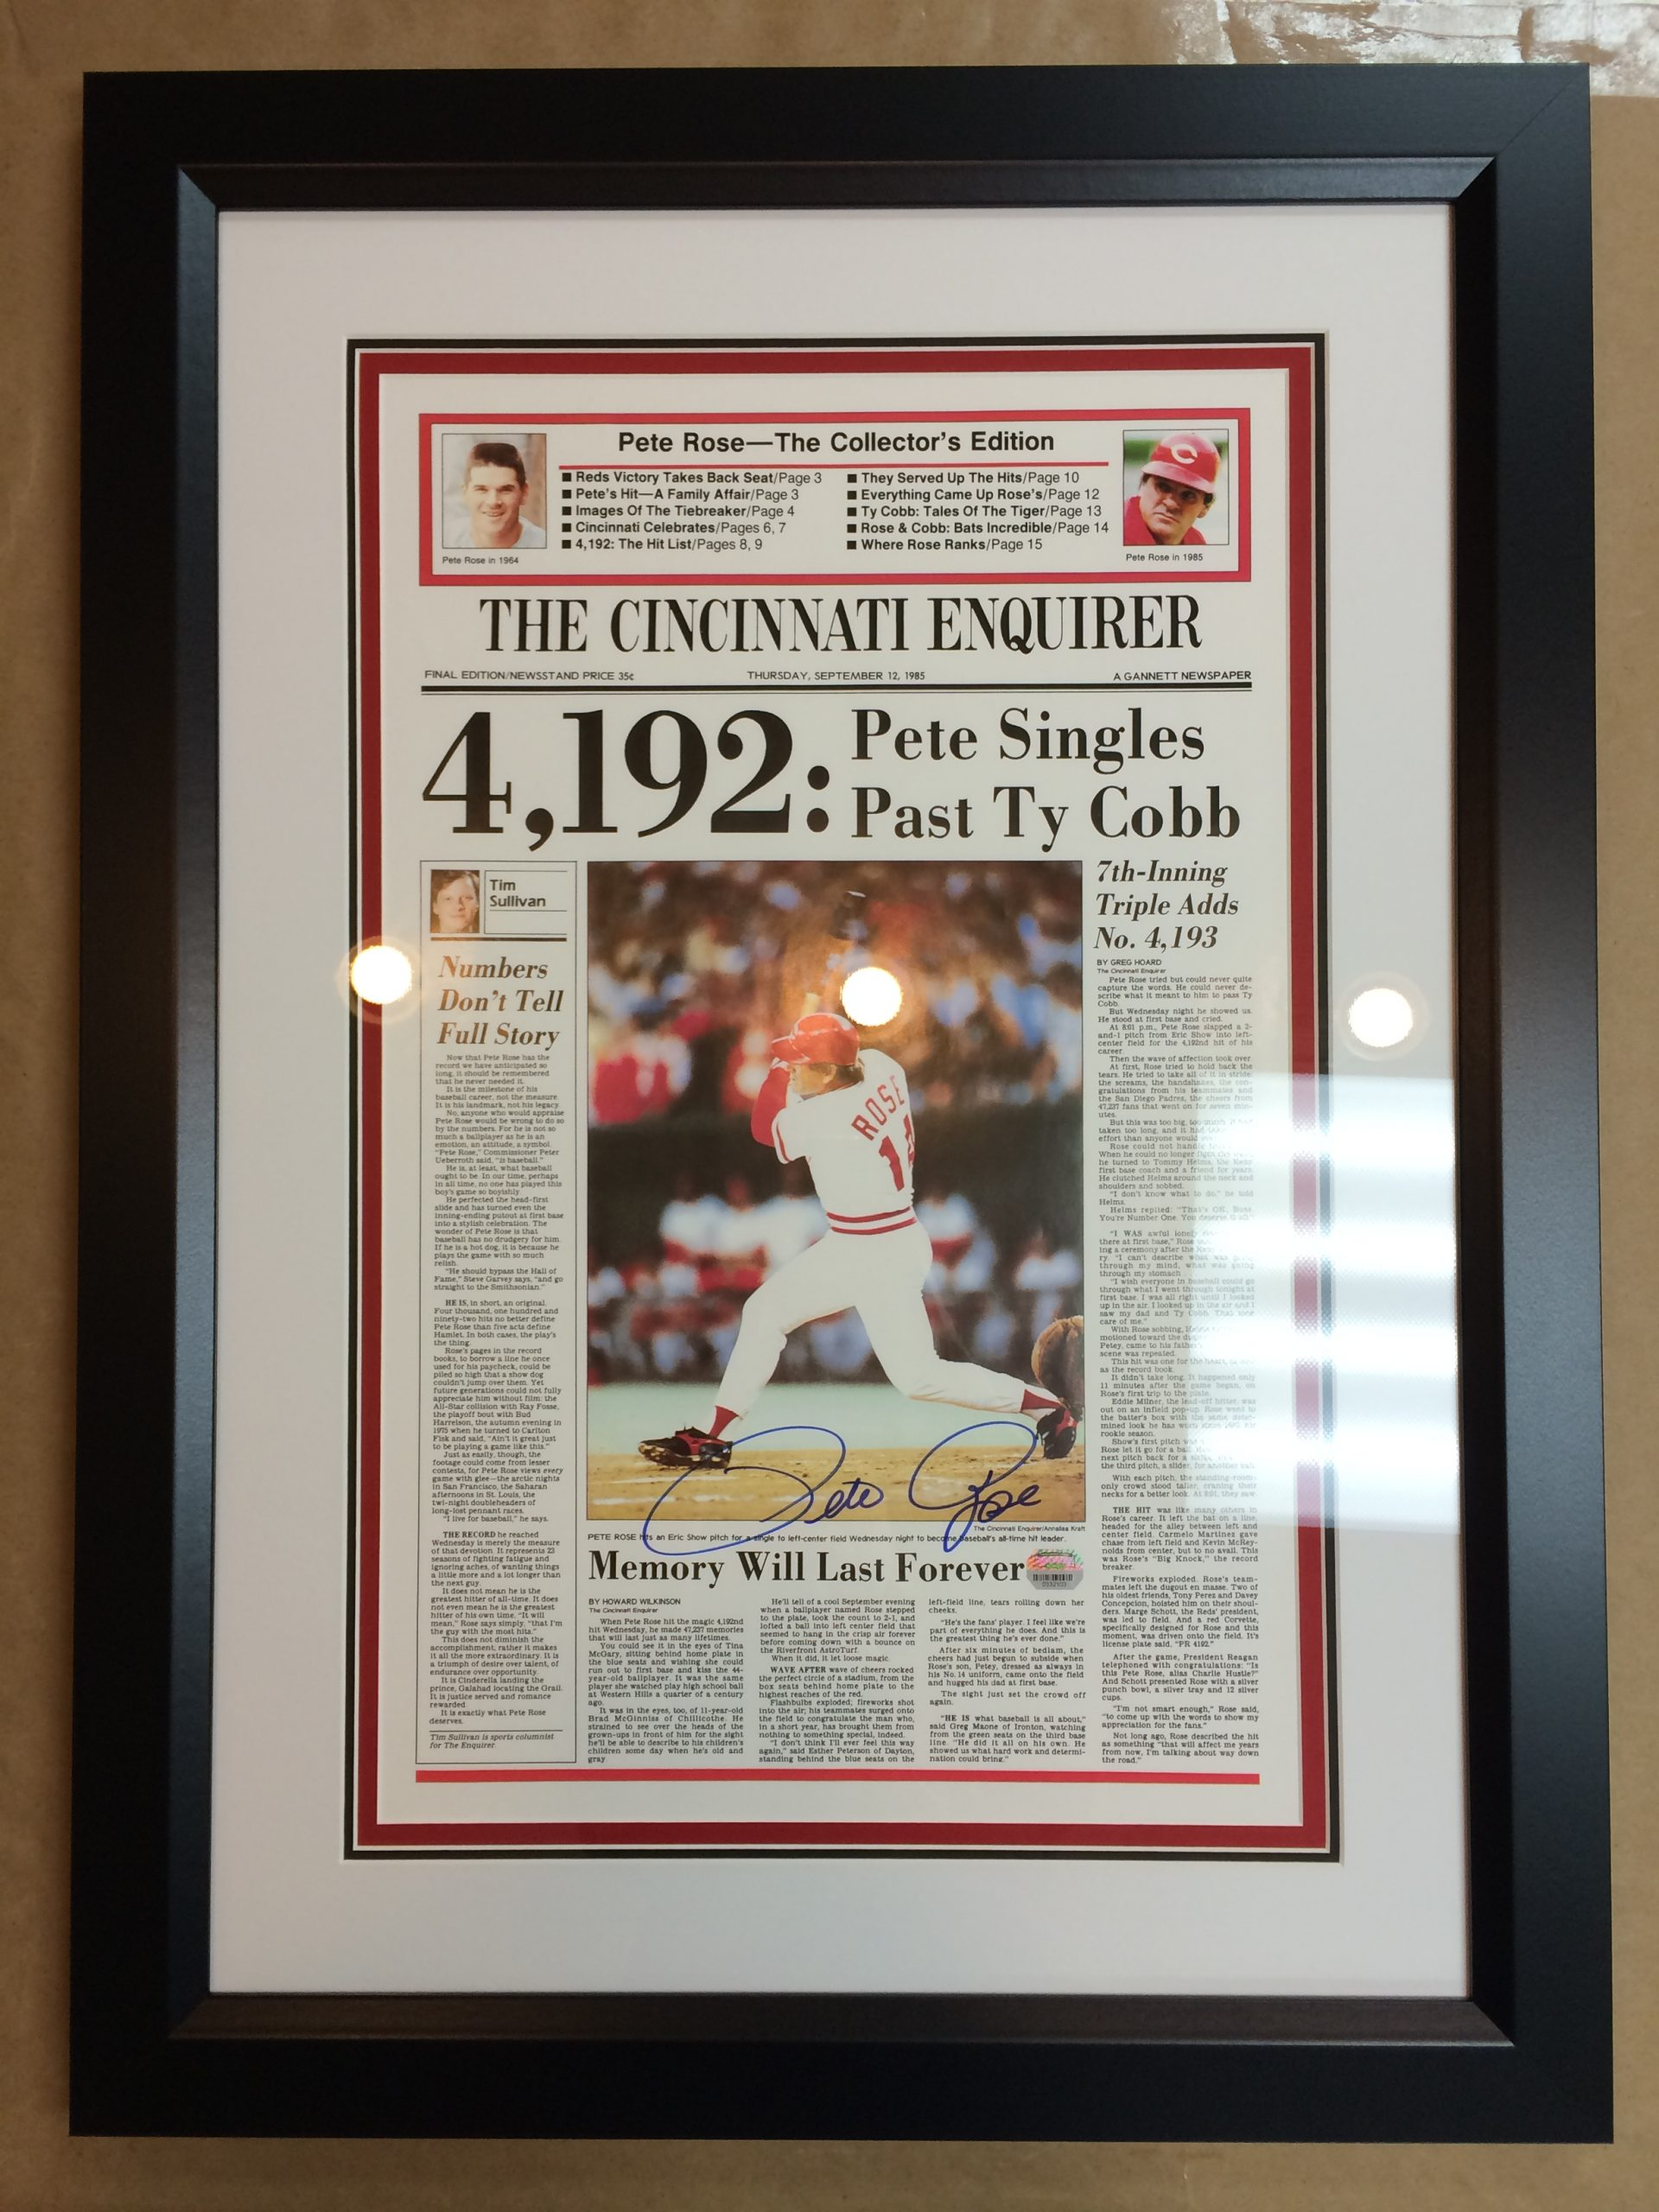 Framed Newspaper about Pete Rose